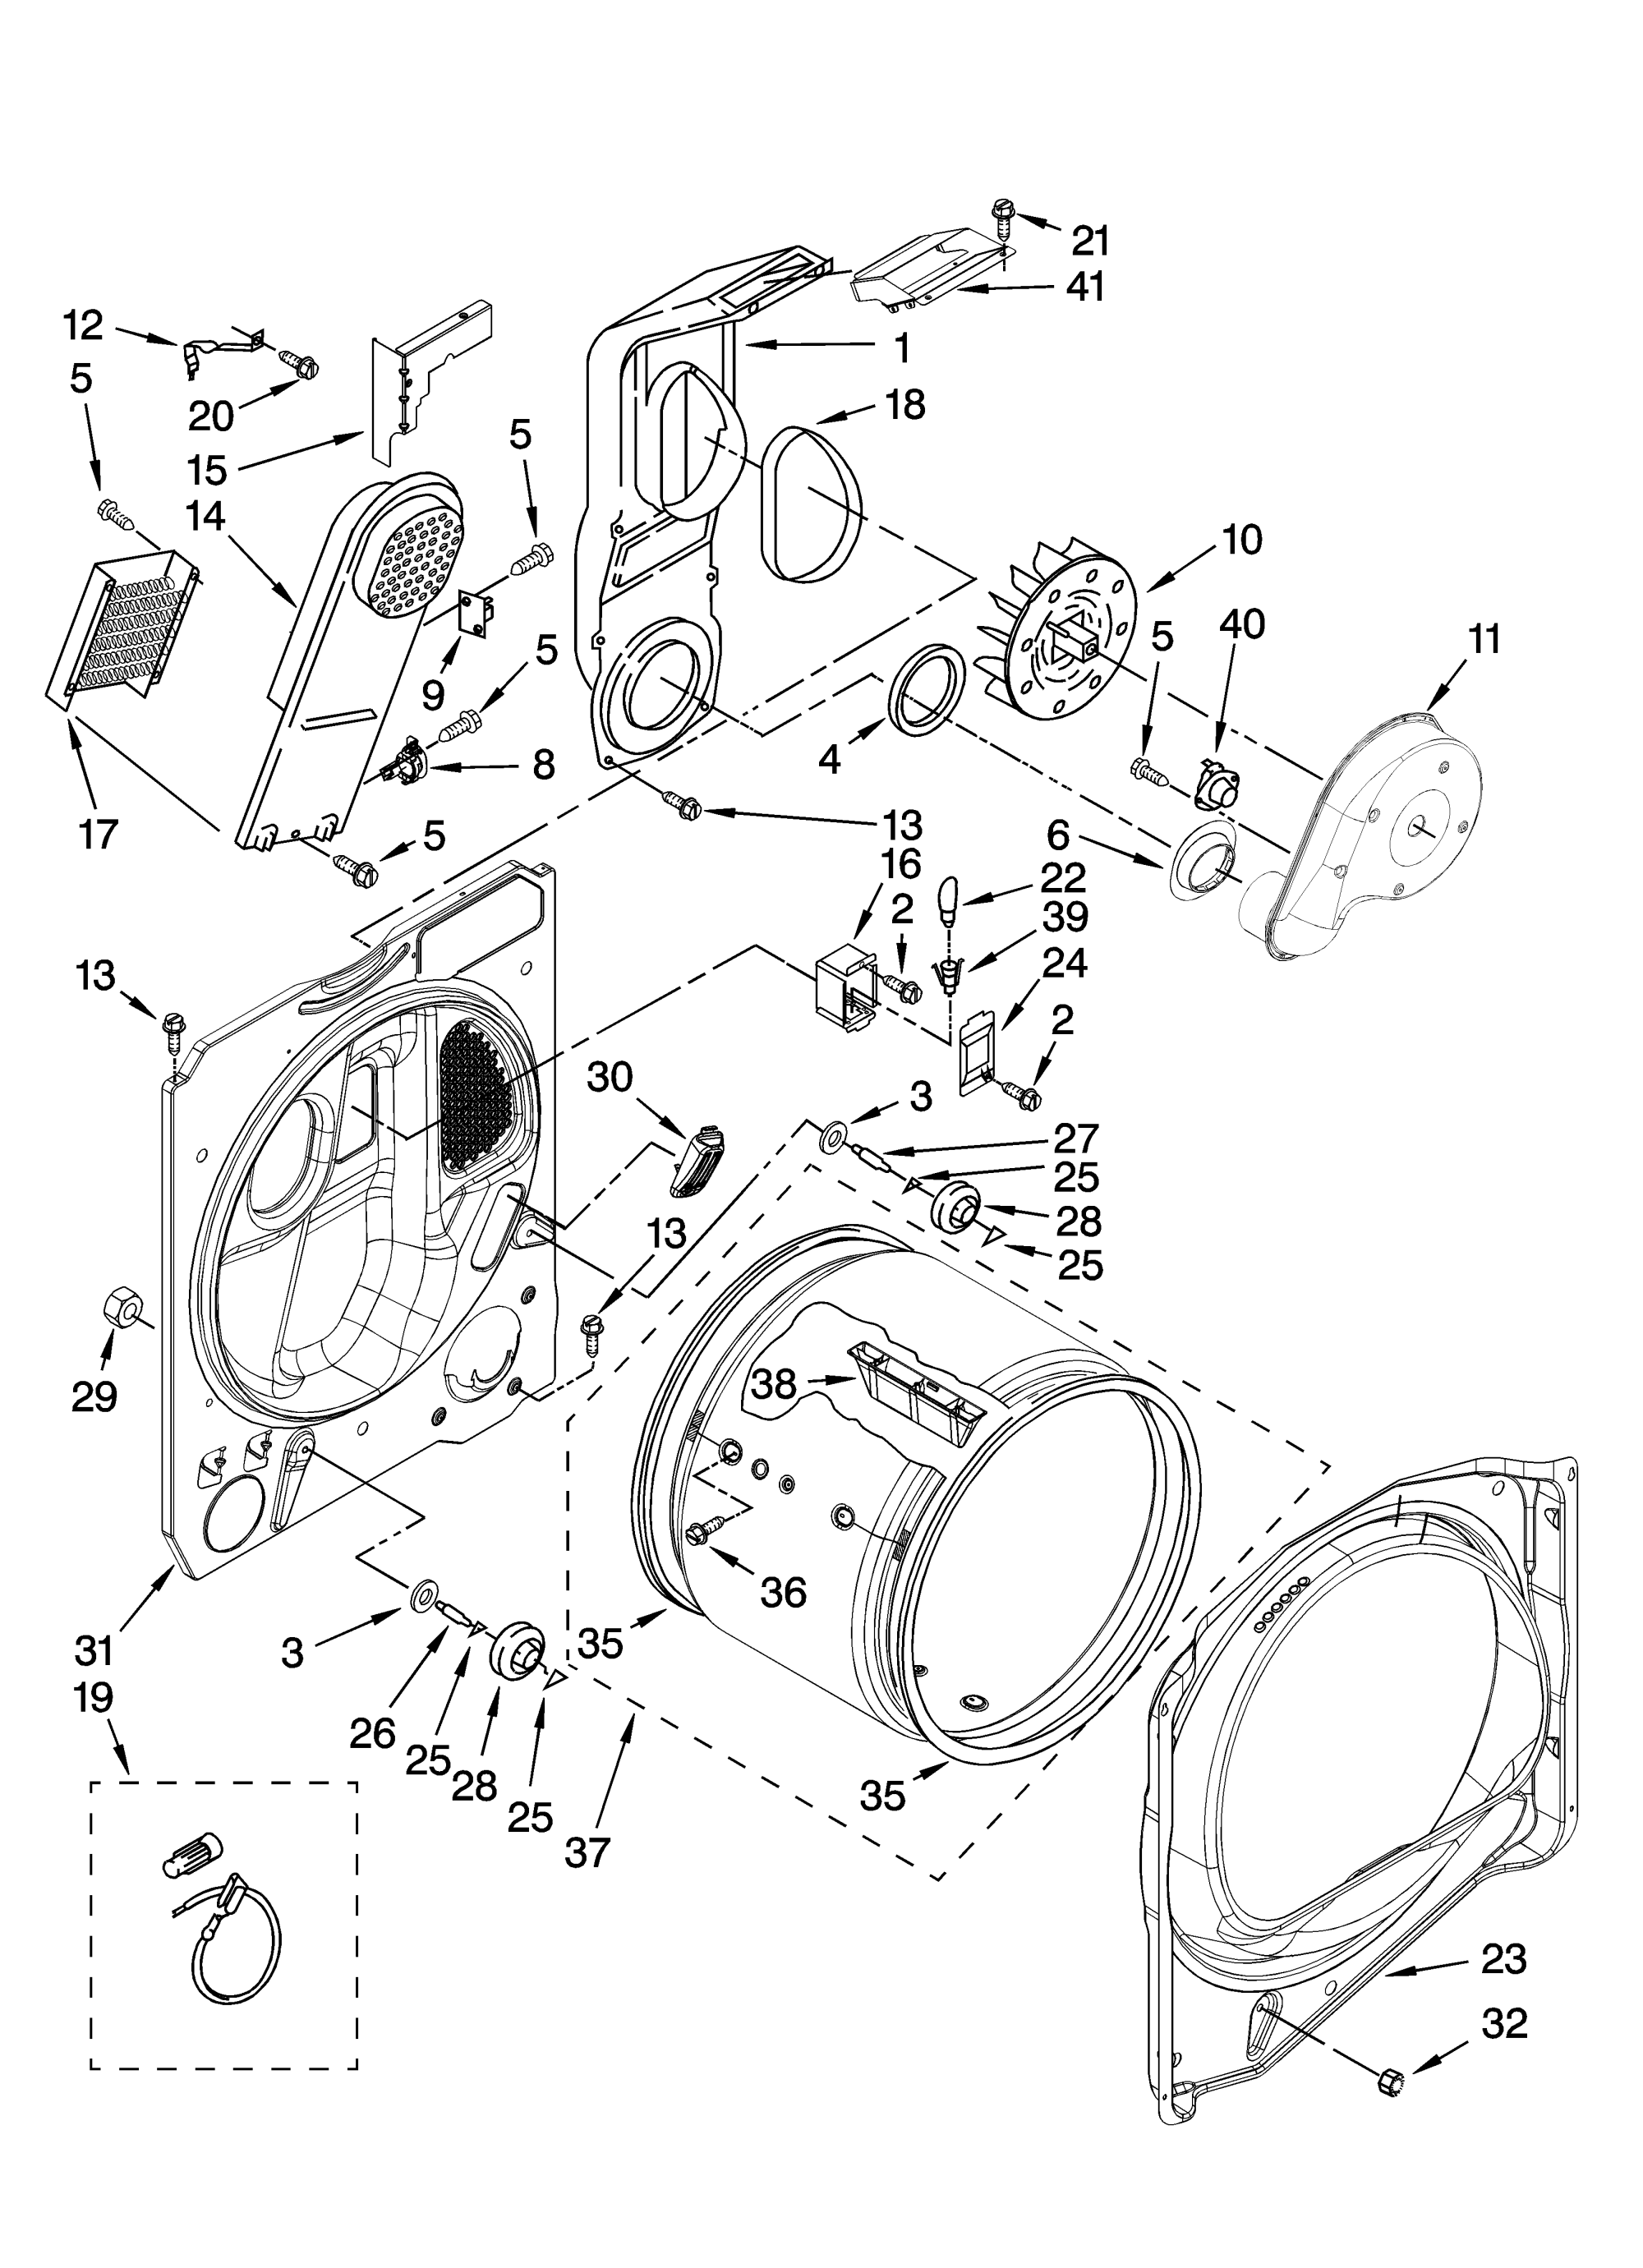 hight resolution of whirlpool wed6400sw1 bulkhead parts optional parts not included diagram